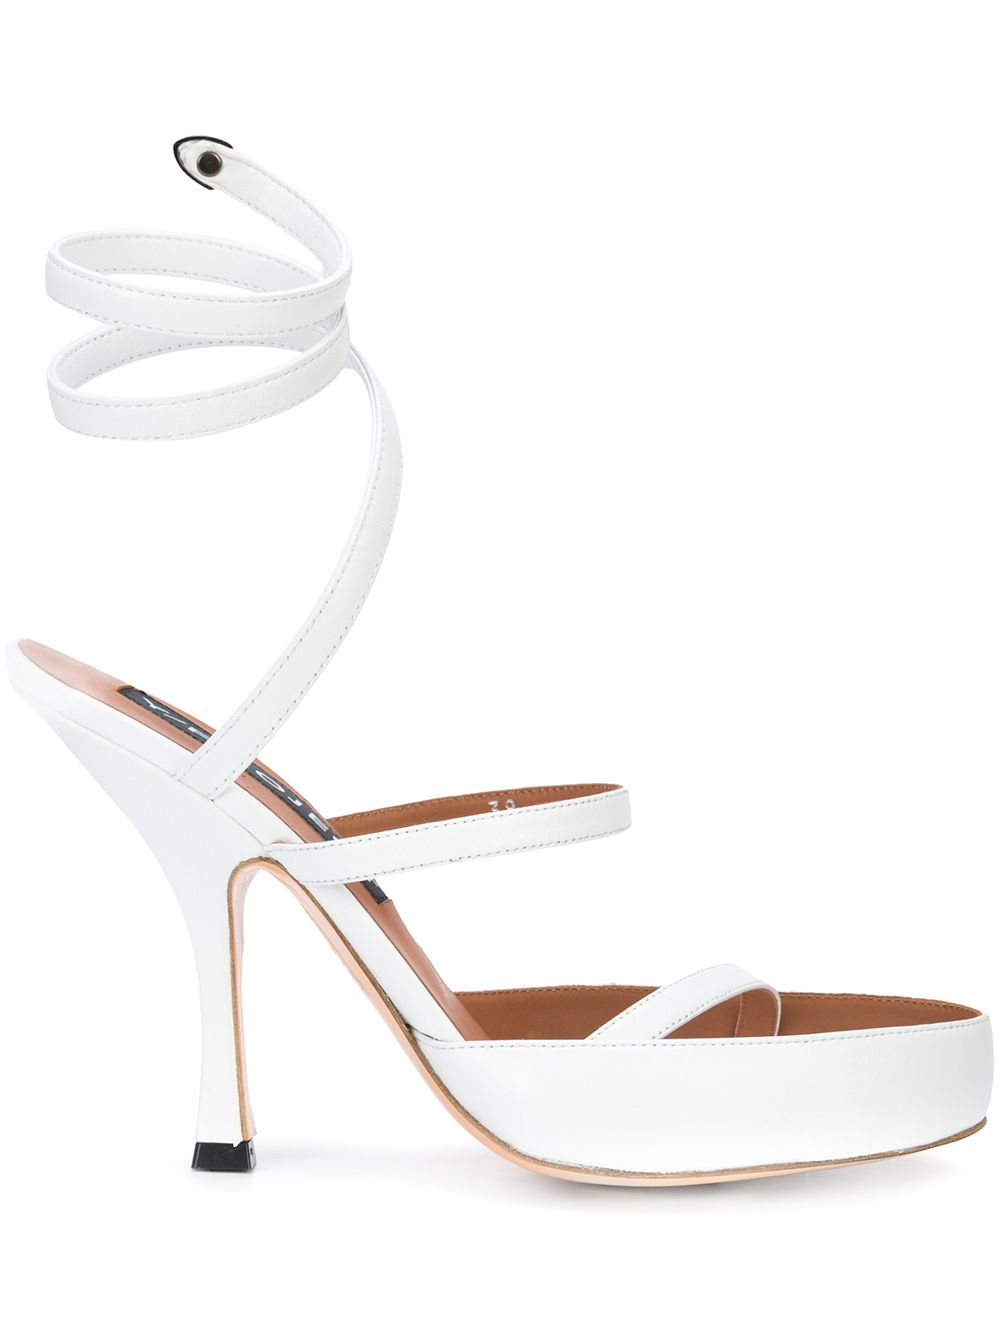 Y/Project White Spiral Sandals - 1